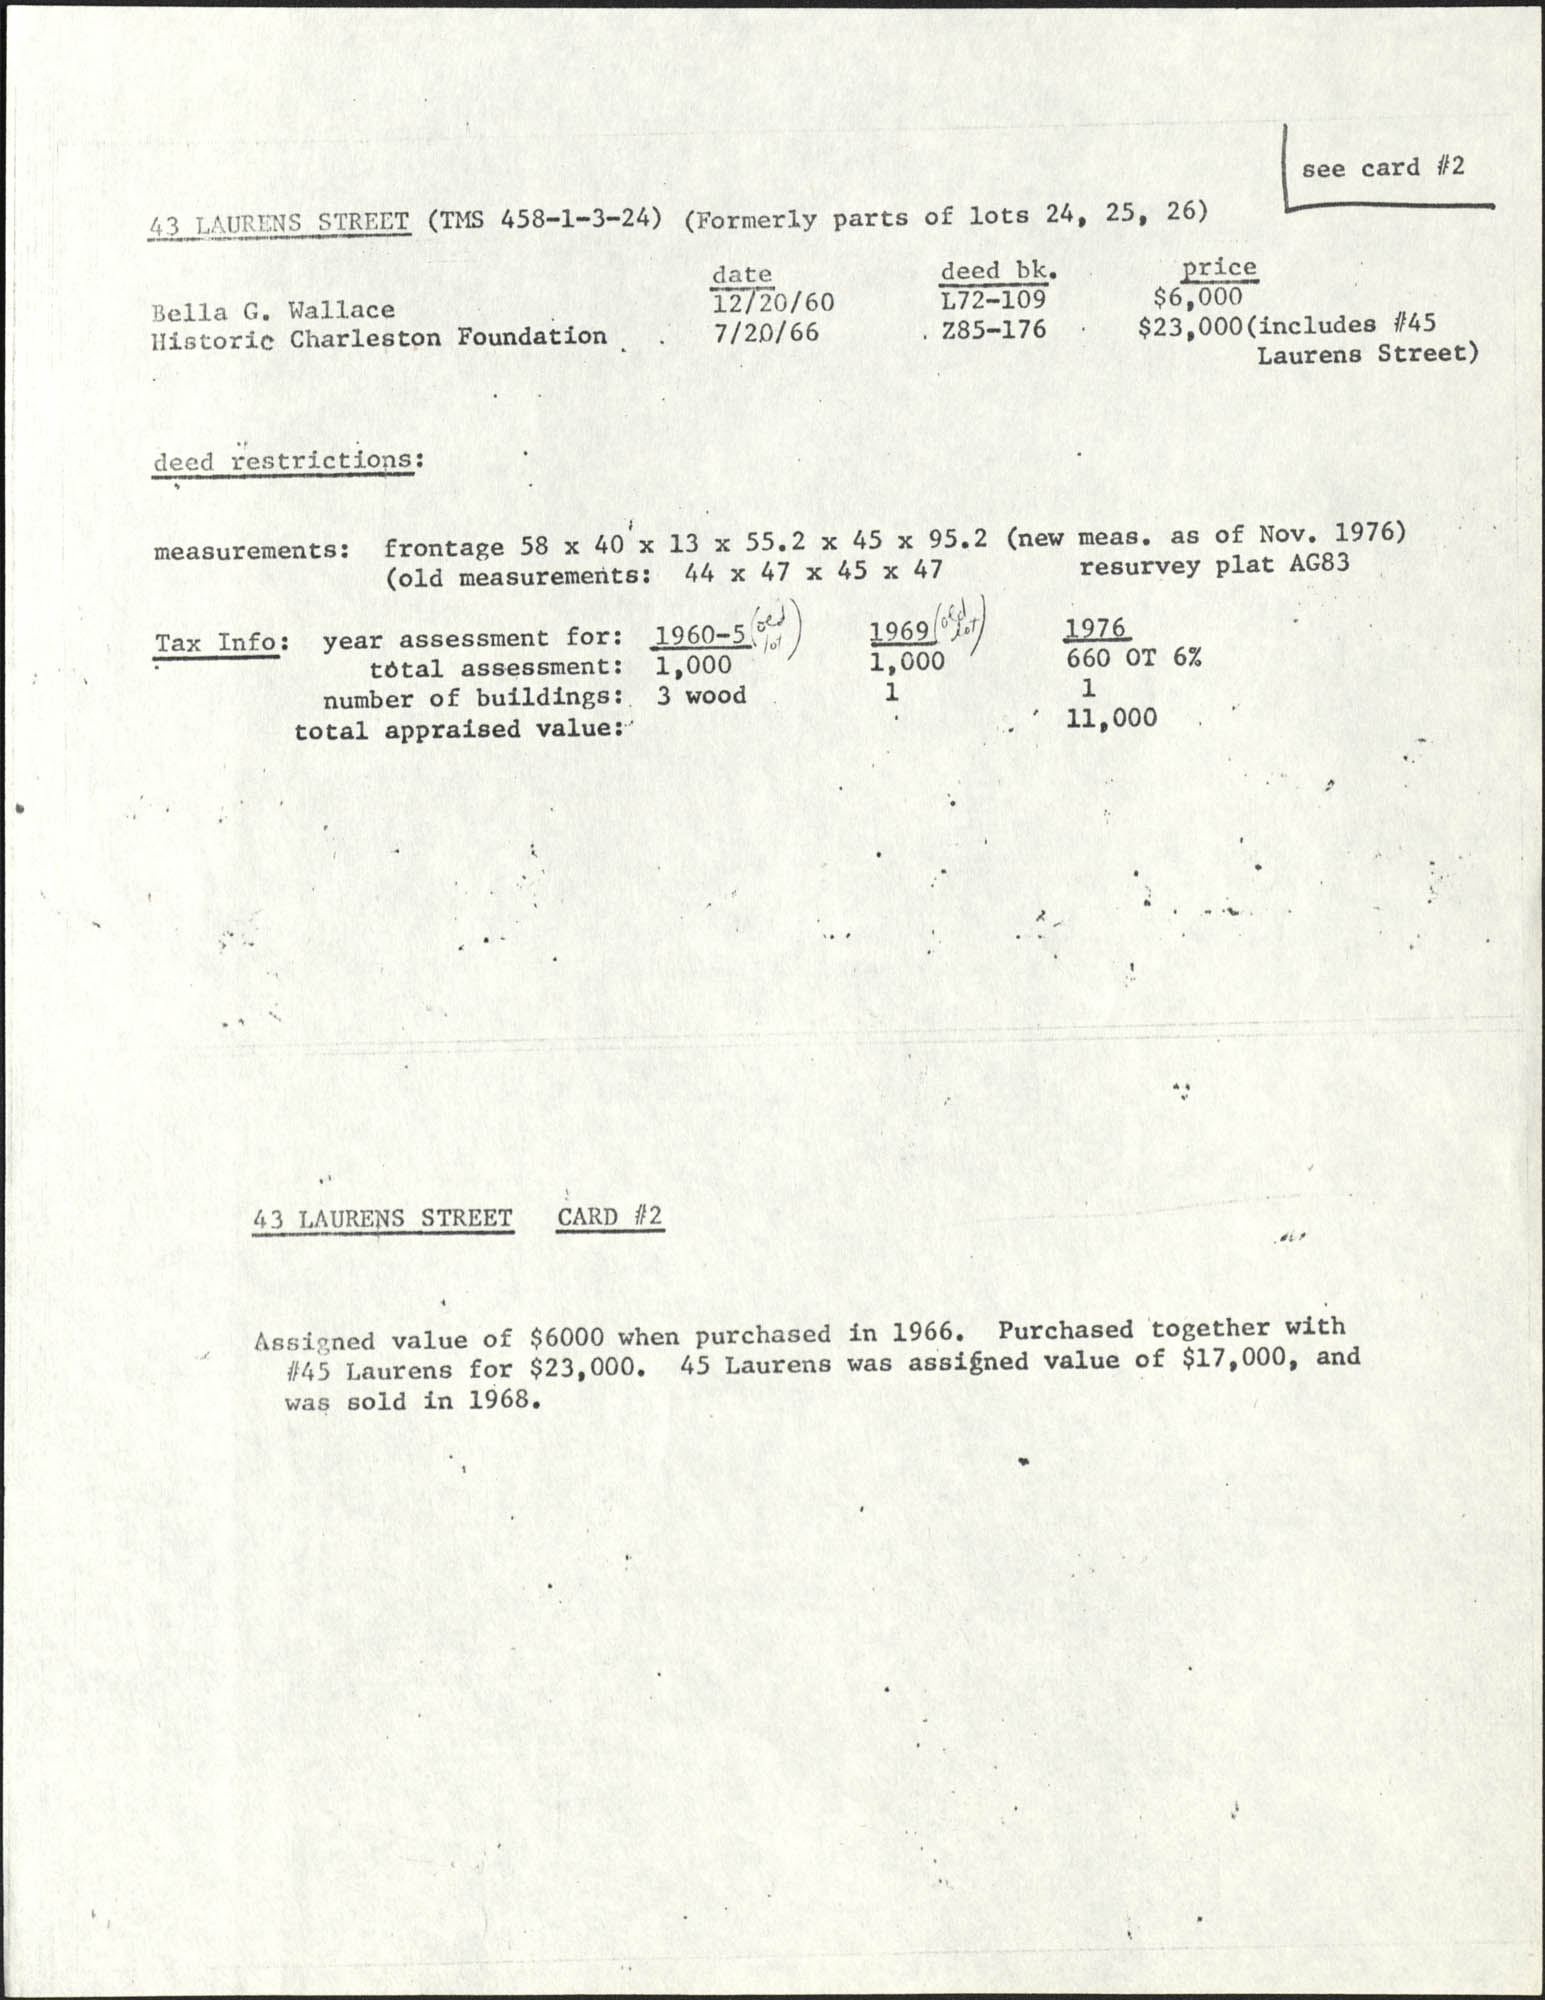 Deed records for 43 Laurens Street